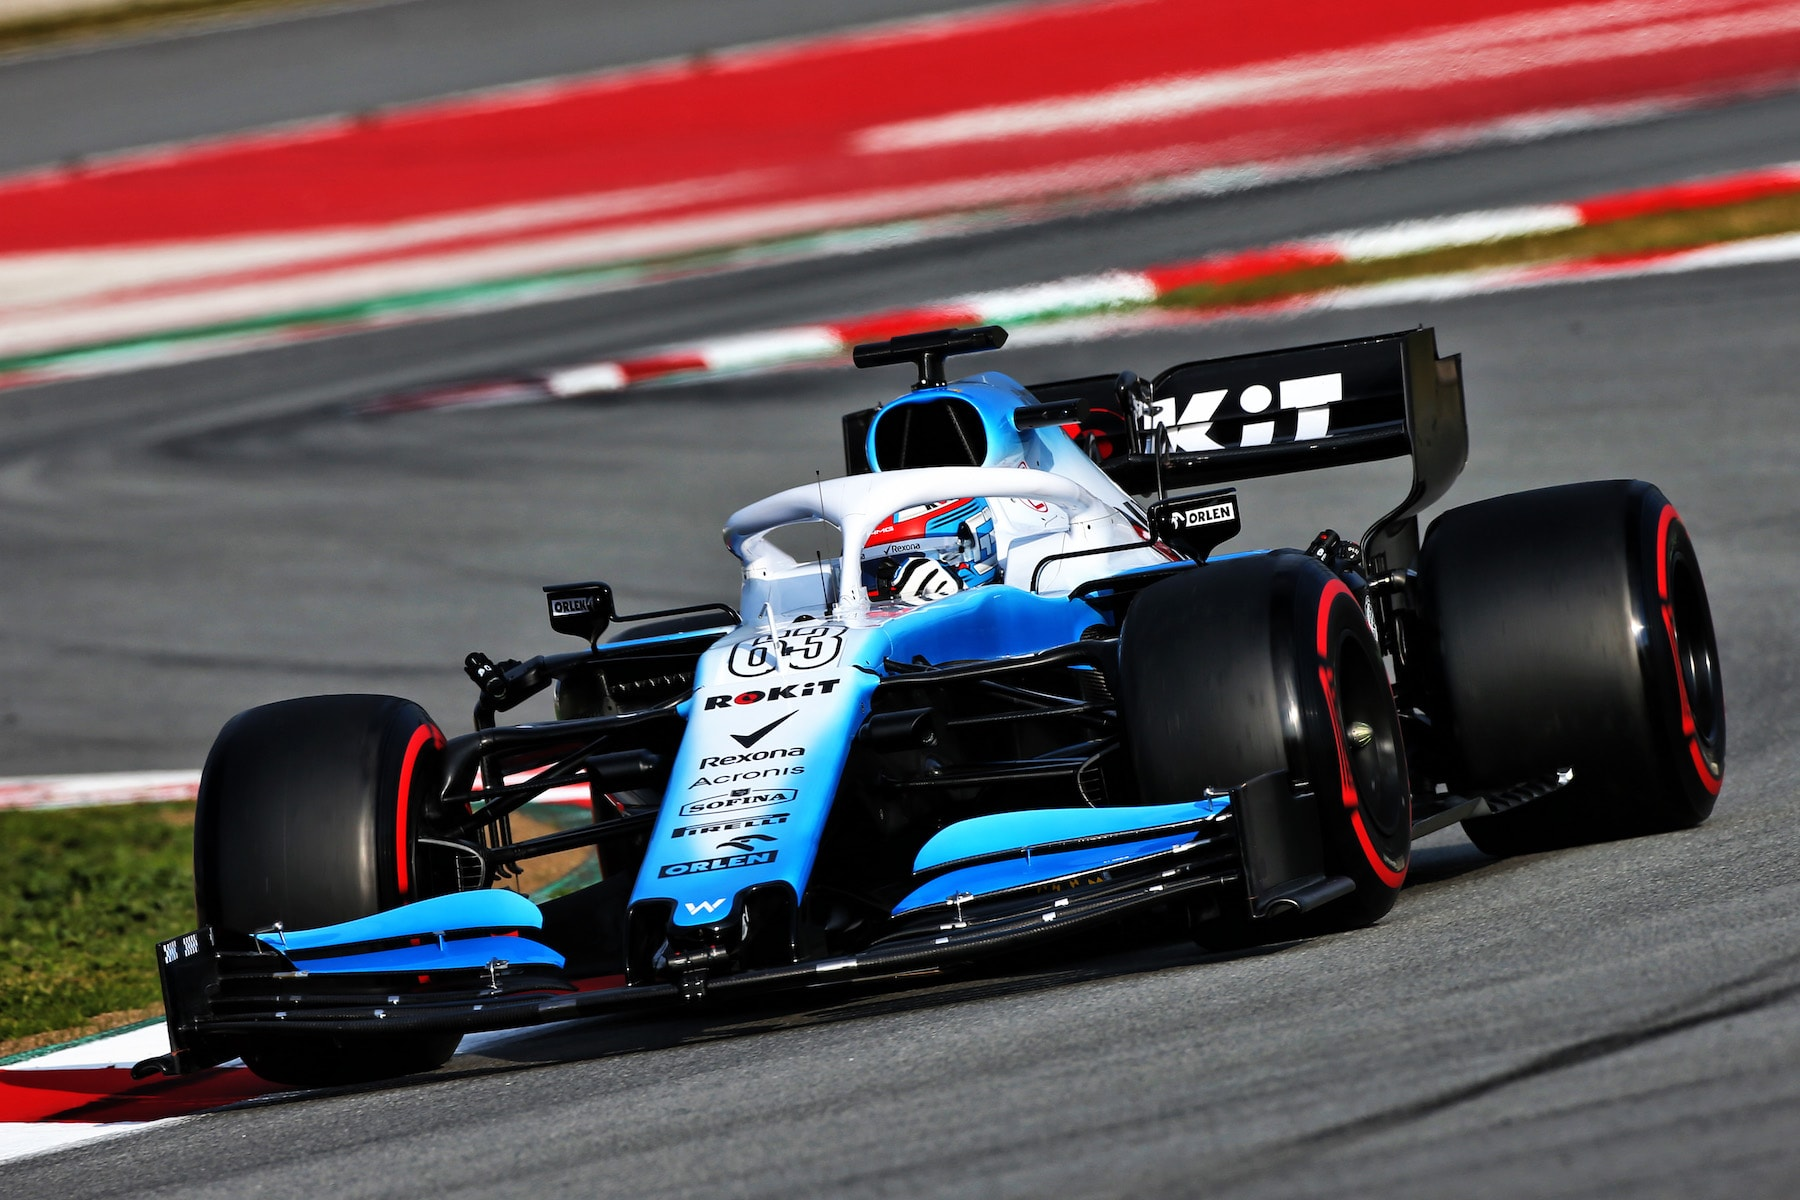 2019 George Russell | Williams FW42 | 2019 Barcelona T1 D3 3 copy.jpg